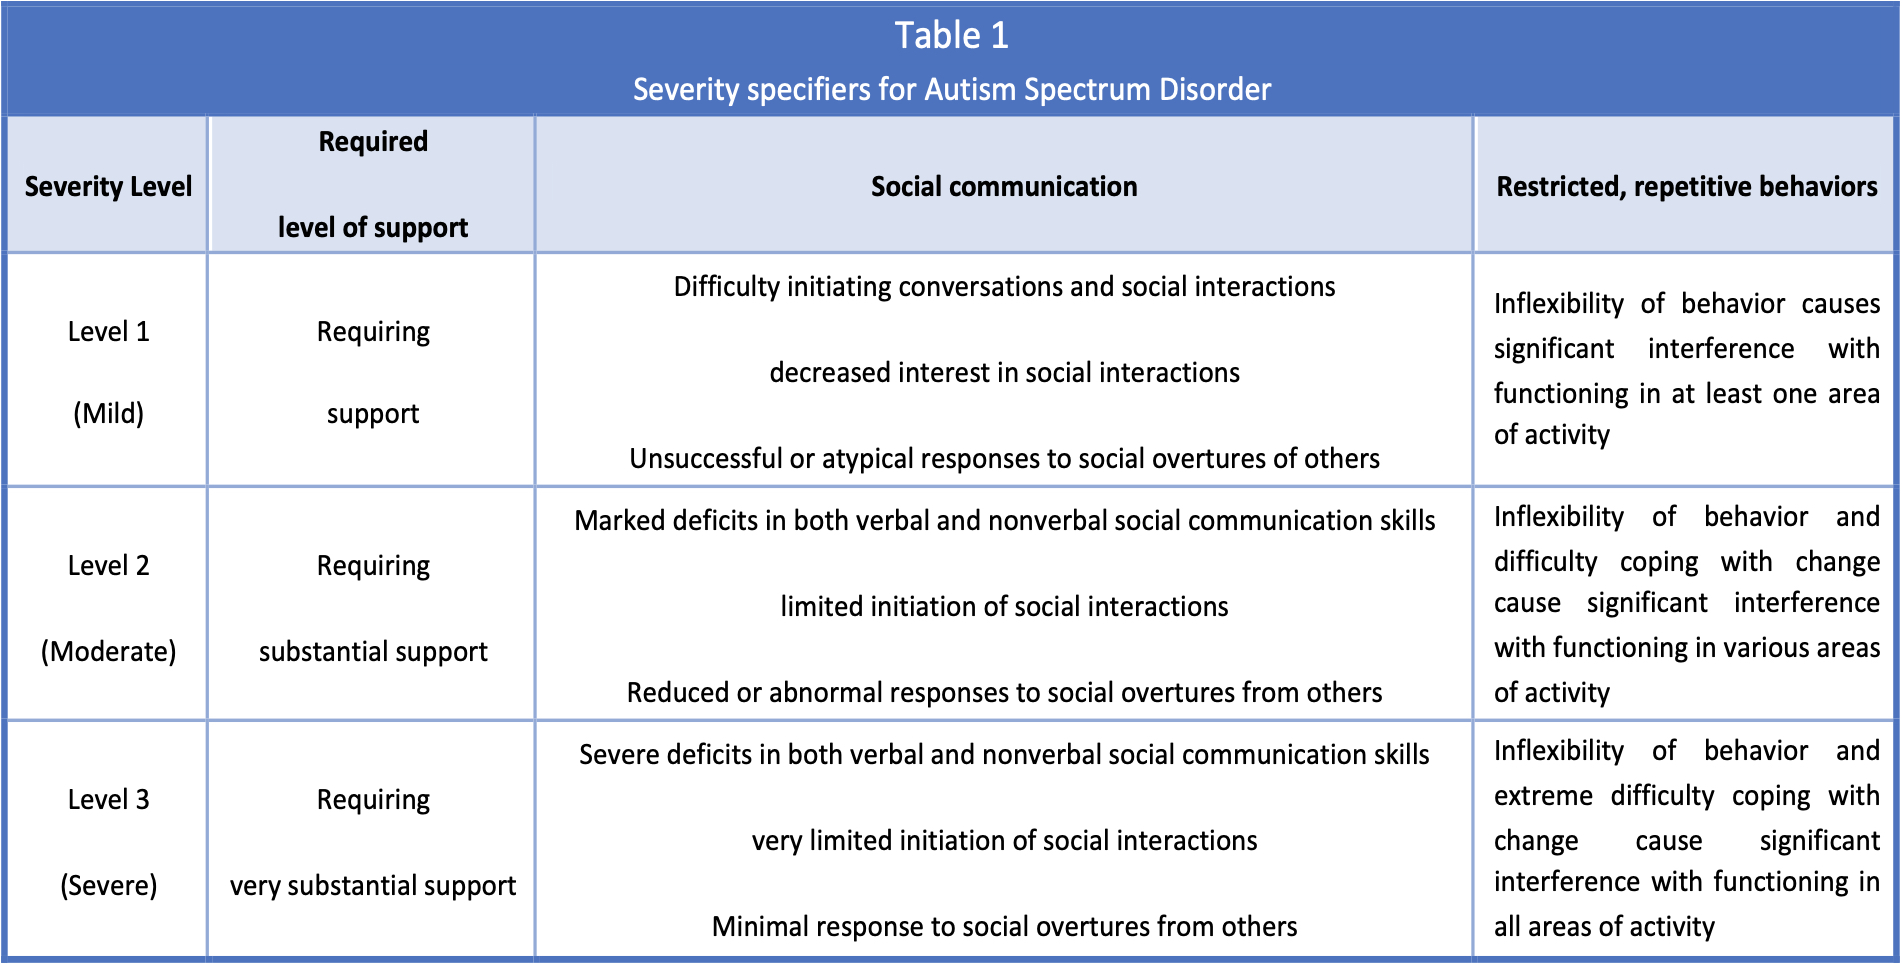 Severity specifiers for Autism Spectrum Disorder